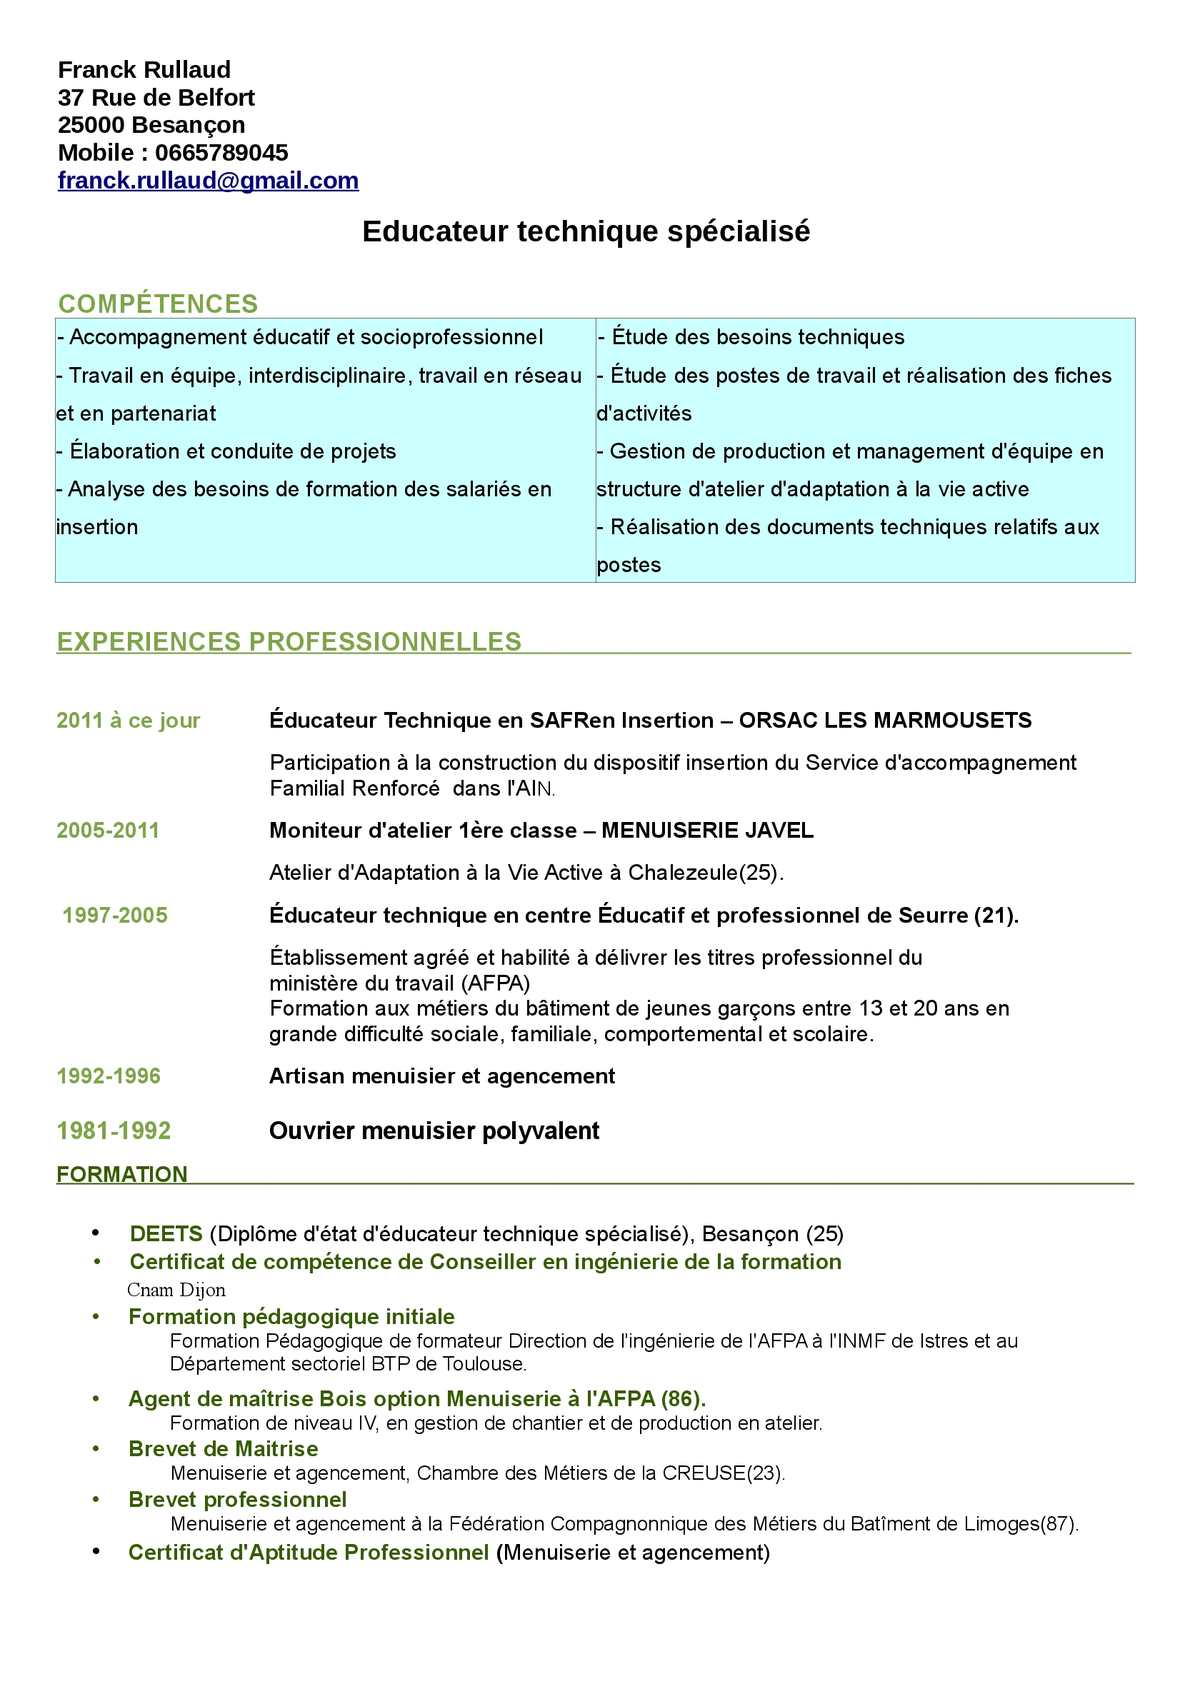 competences educateur specialise cv